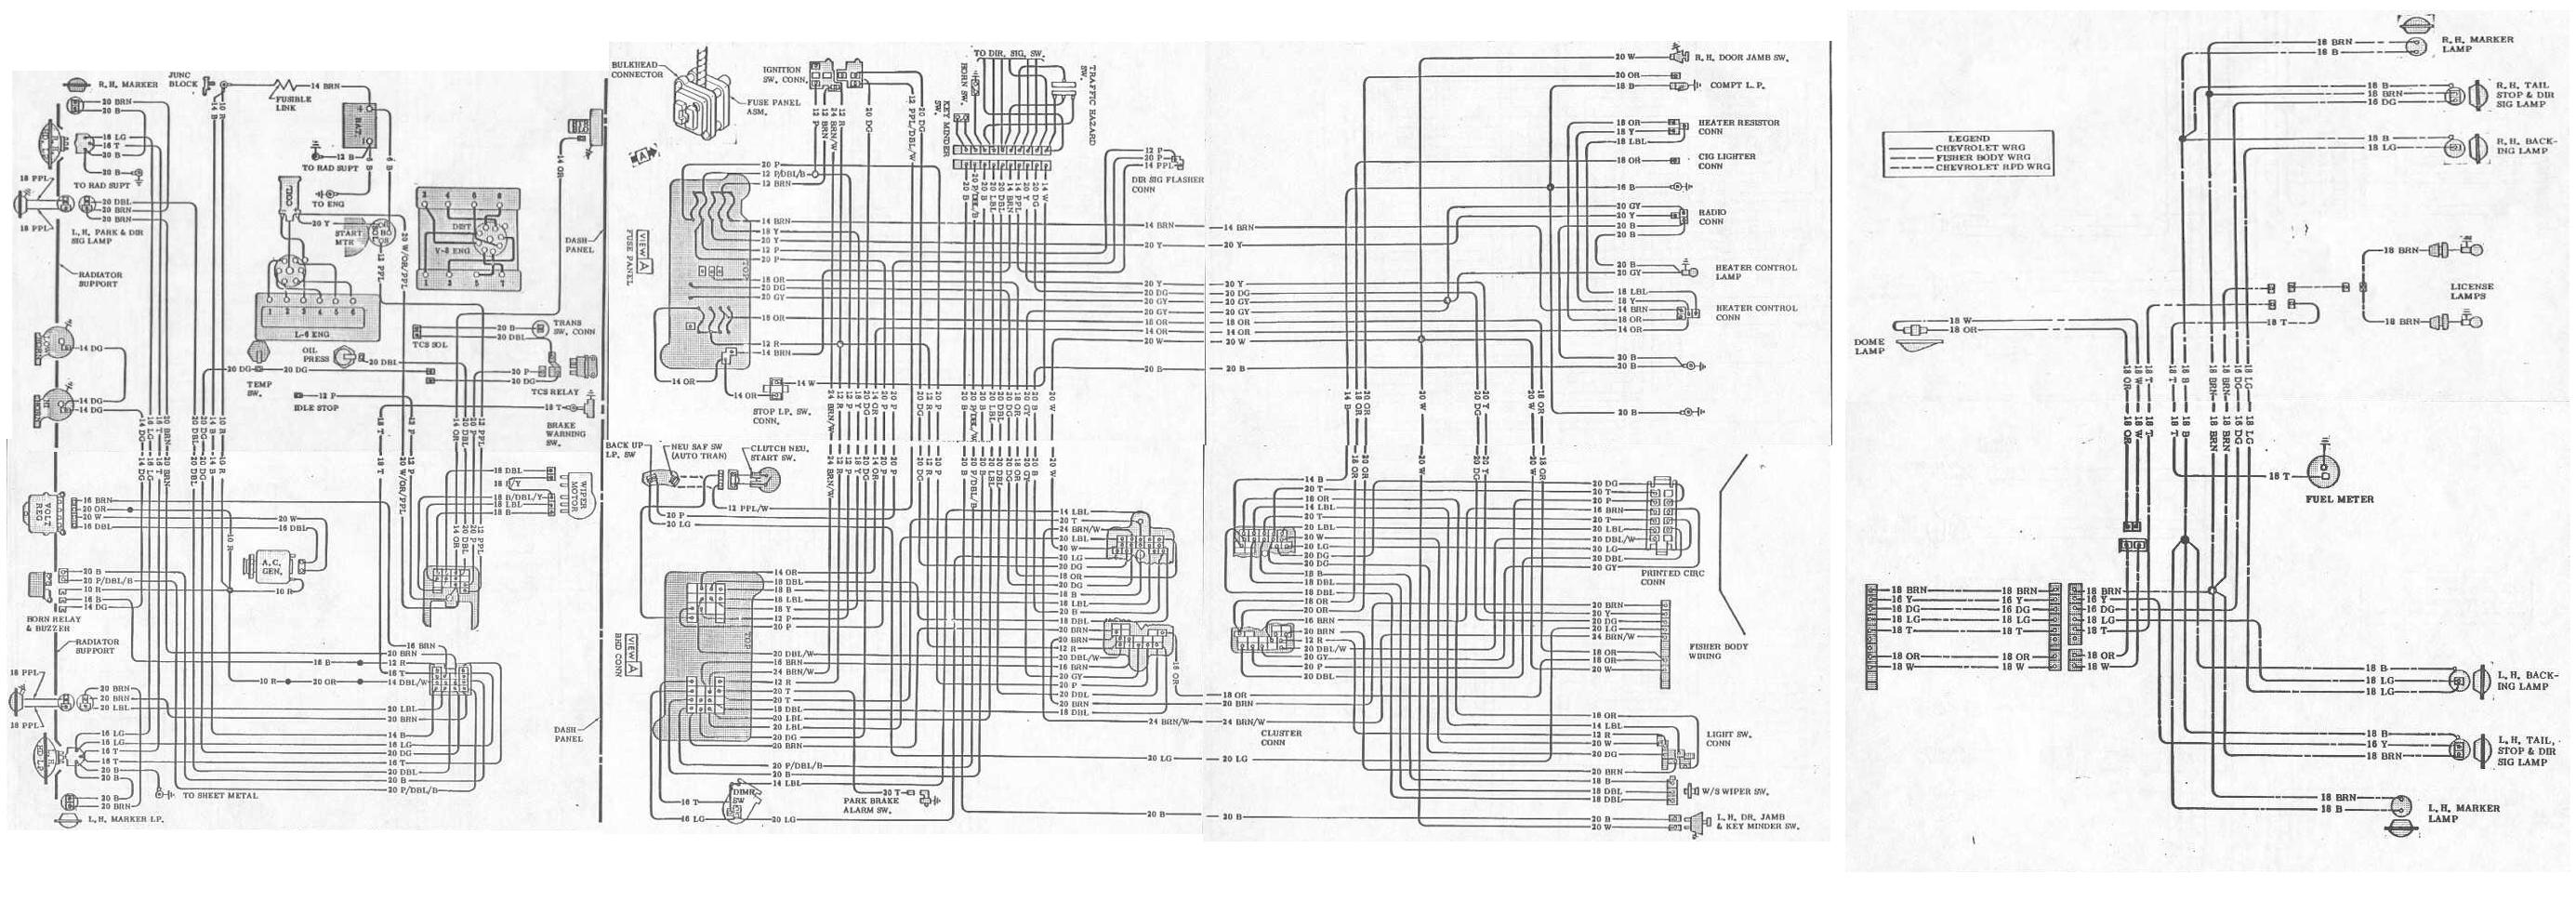 1970 Pontiac Firebird Wiring Diagram Wiring Diagram Enter Enter Lechicchedimammavale It